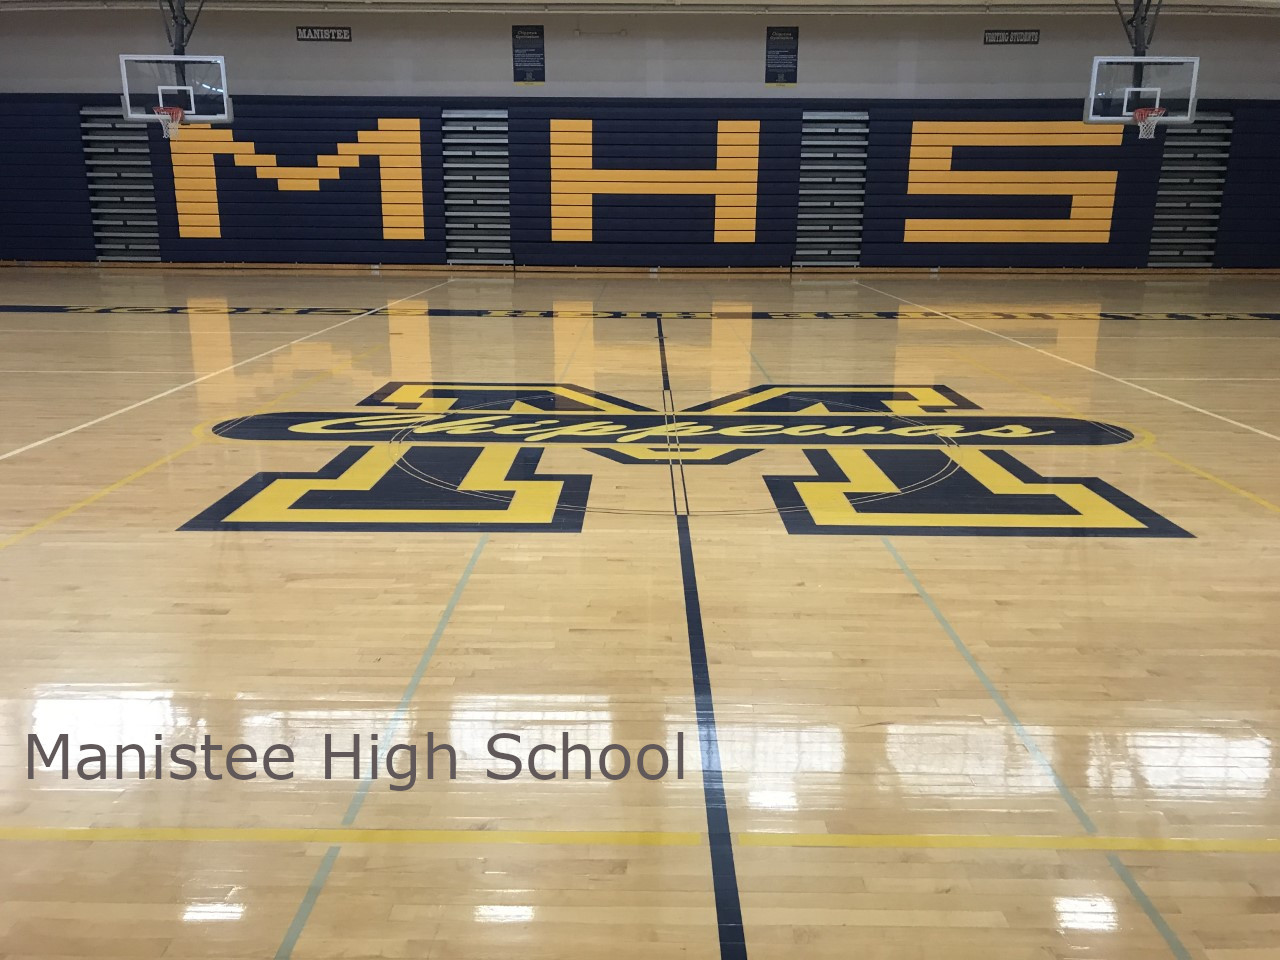 Manistee High School